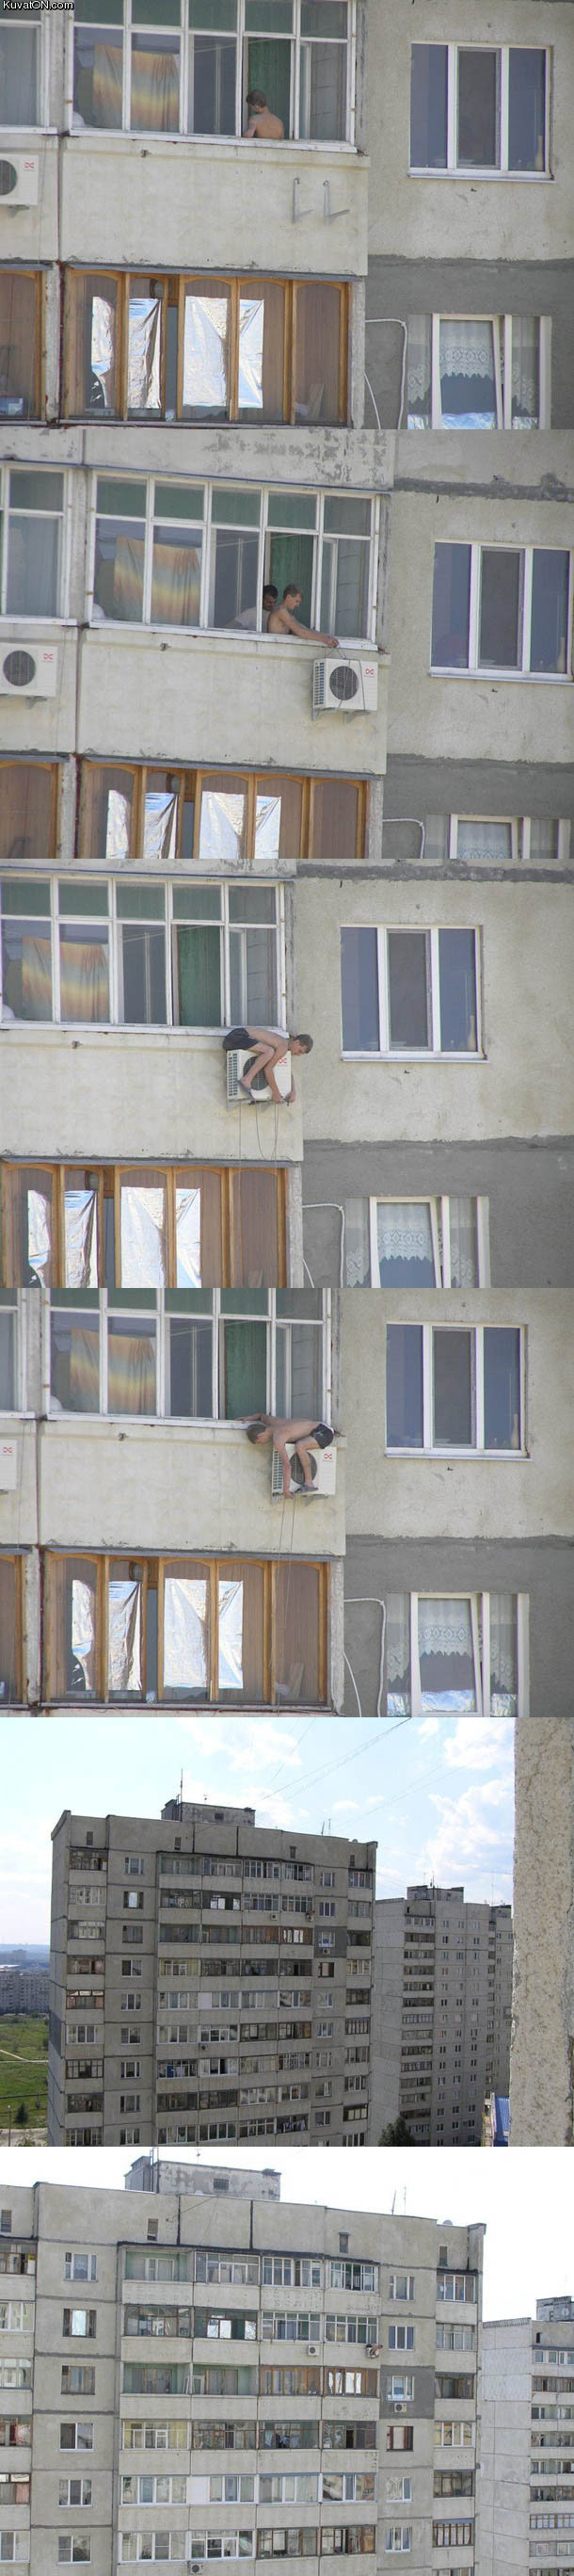 """High. <a href="""" target=_blank>more-funny.blogspot.com</a>.. hell, not even a safety rope, that dudes nuts."""